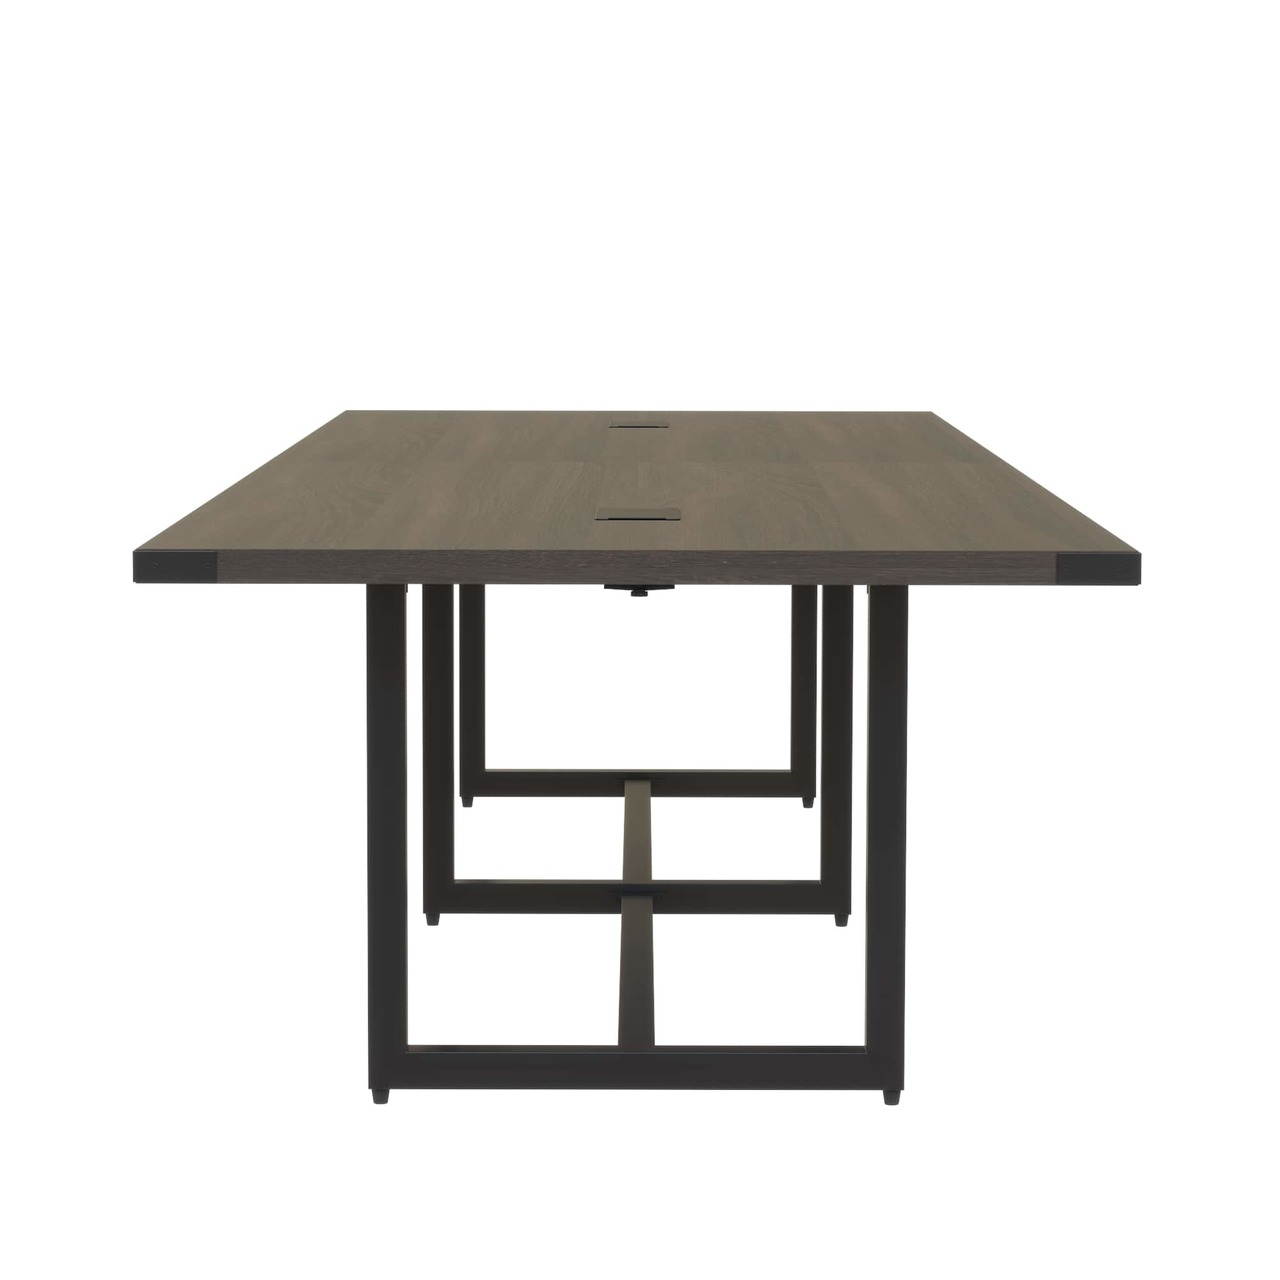 mirella 12 ft. conference room table mrs12